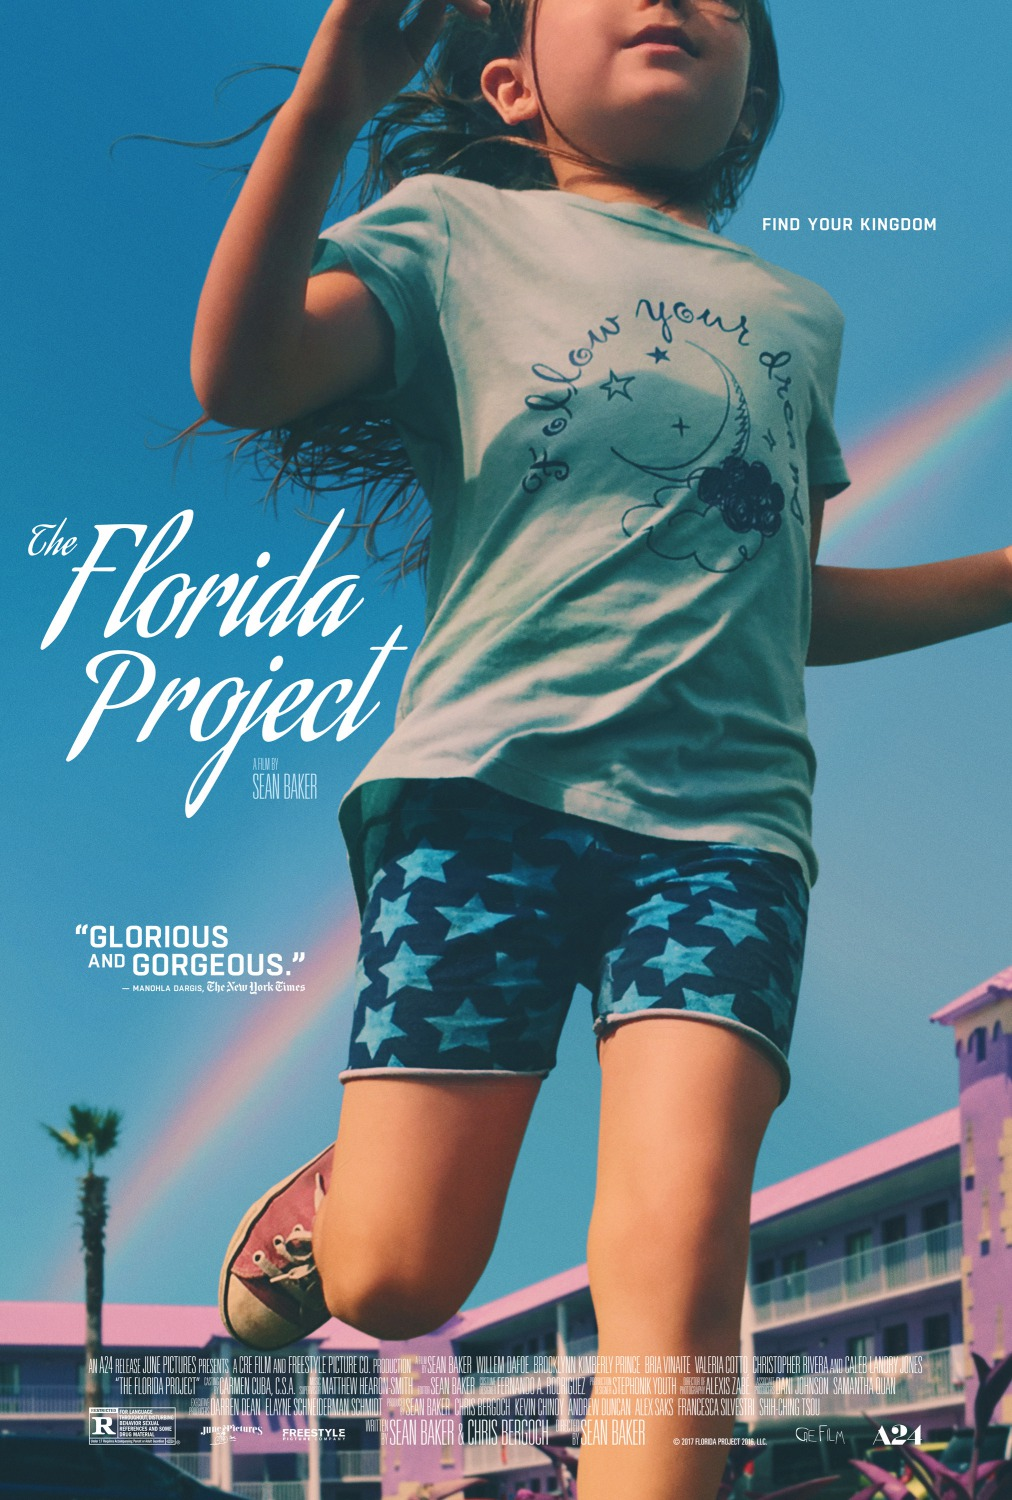 The Florida Project   (2017) dir. Sean Baker Rated: R image:©2017  A24